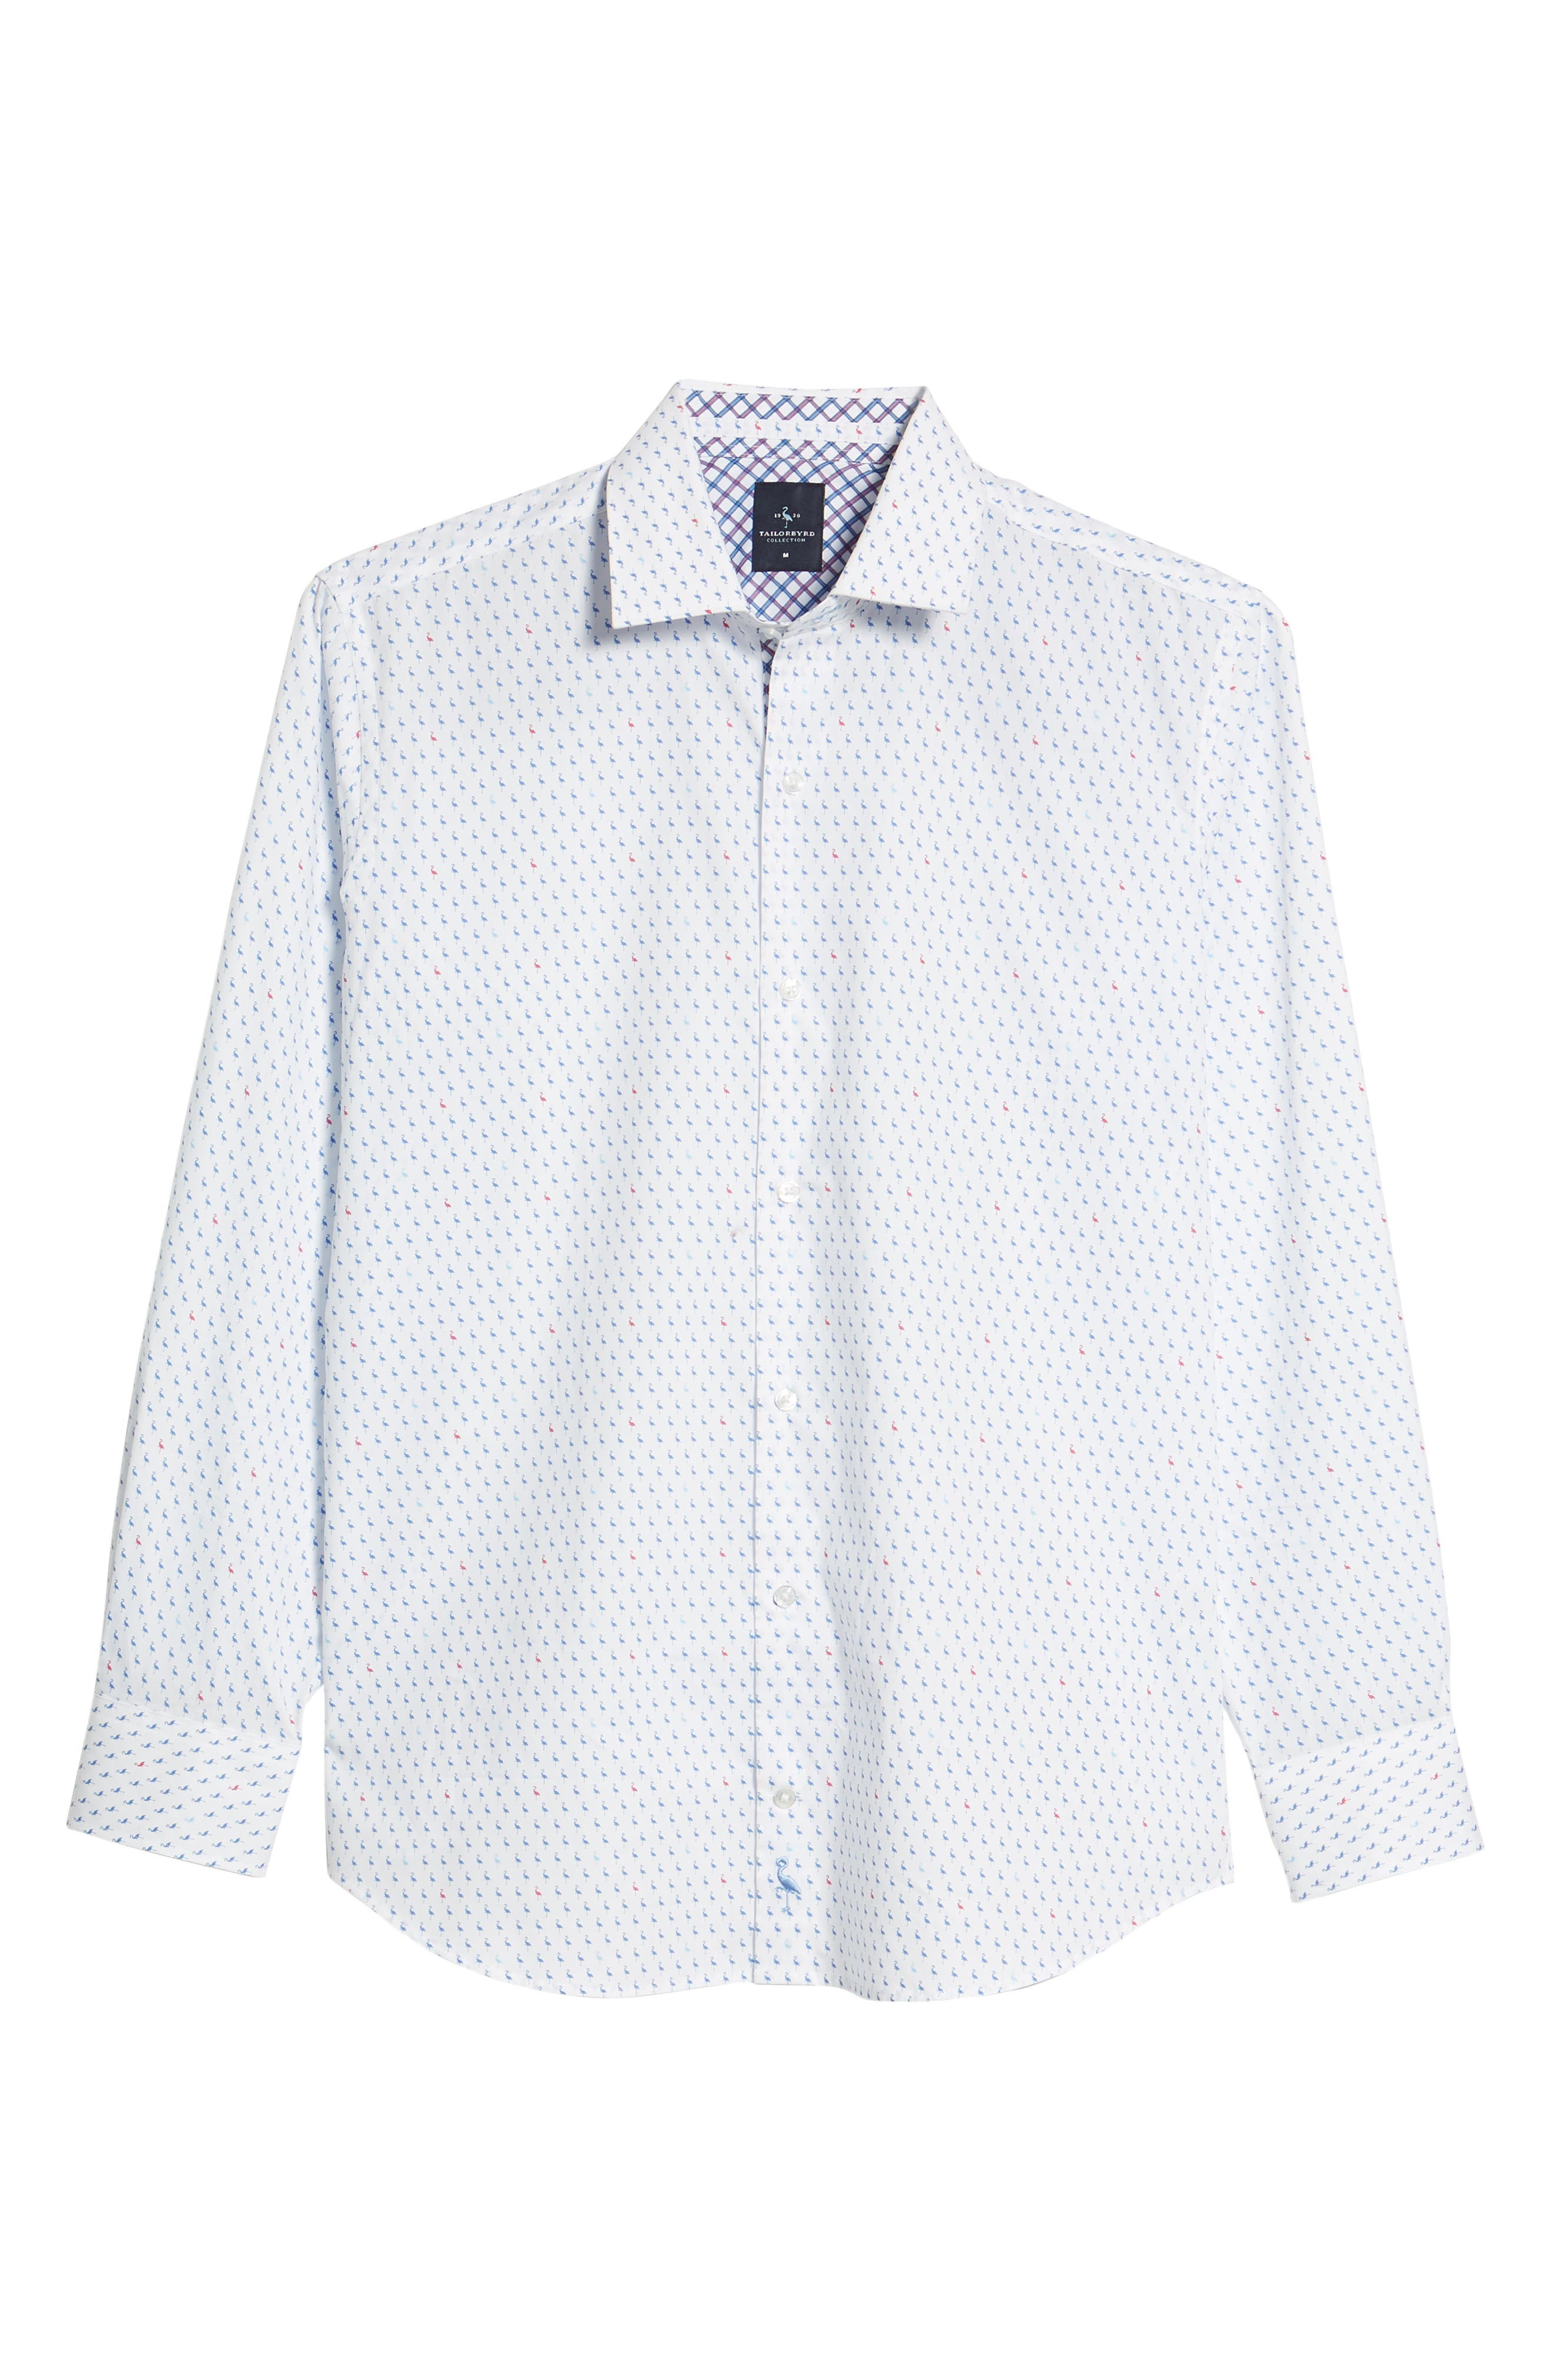 Auden Regular Fit Print Sport Shirt,                             Alternate thumbnail 6, color,                             490